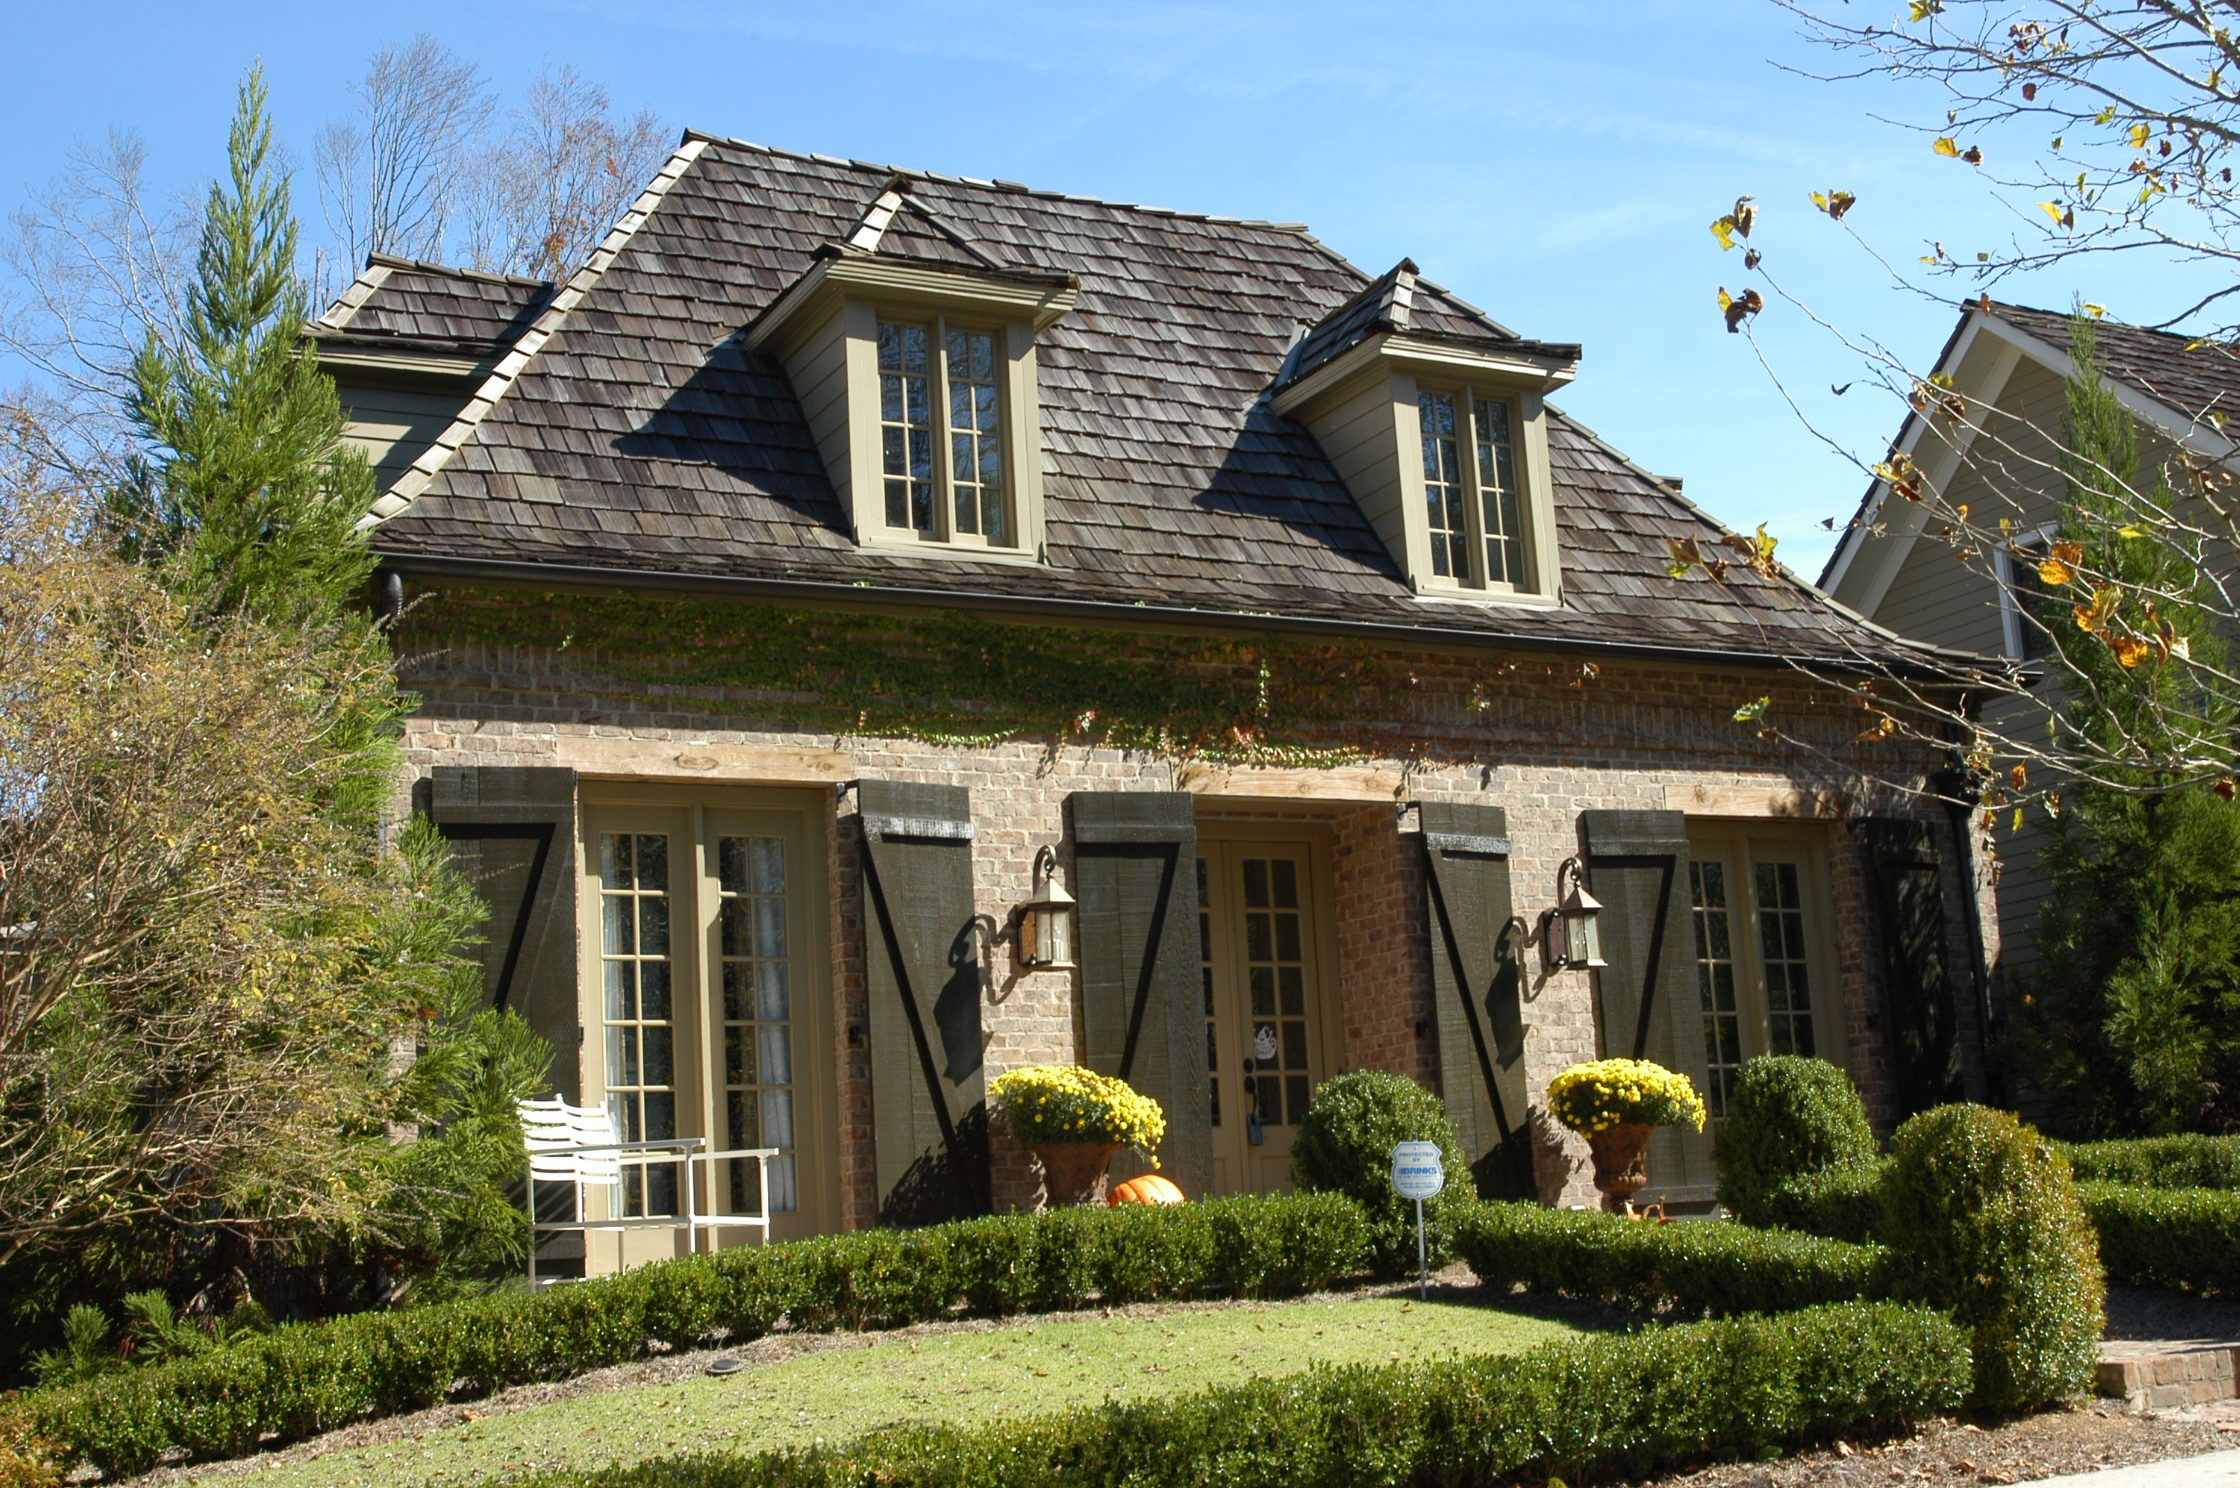 French Country Exterior Joy Studio Design Gallery Best Design